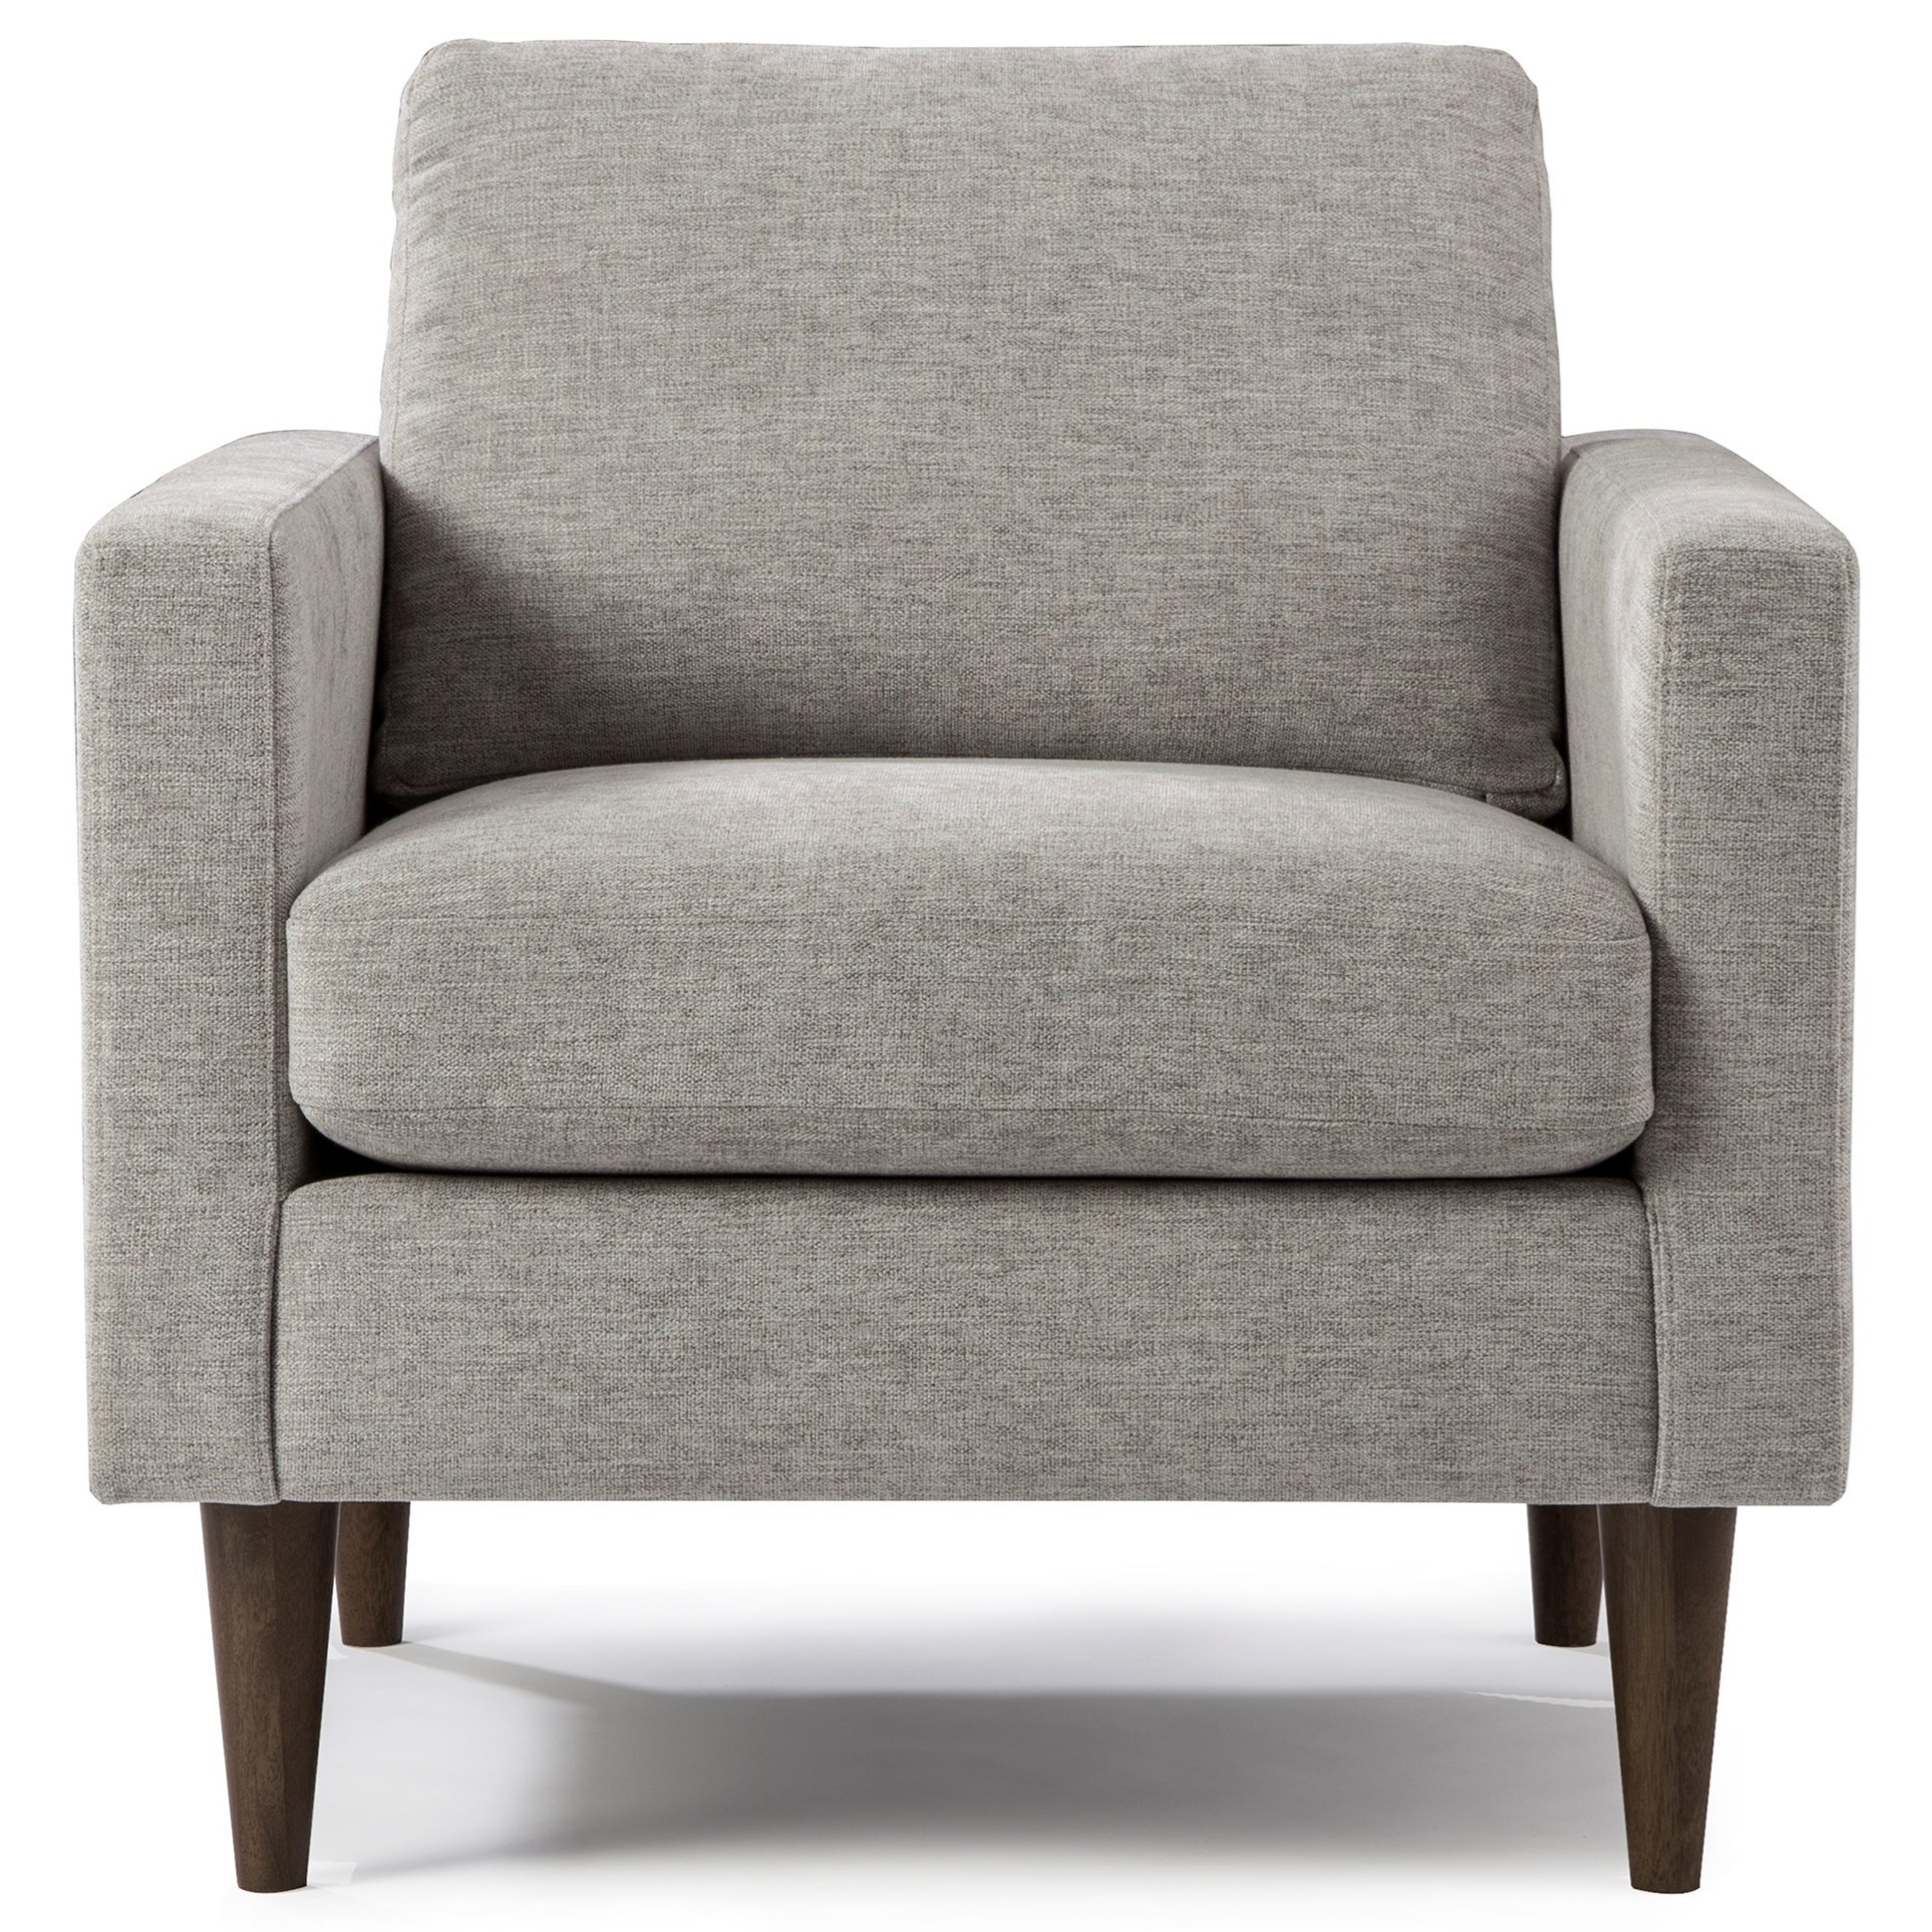 Trafton Chair by Best Home Furnishings at Baer's Furniture